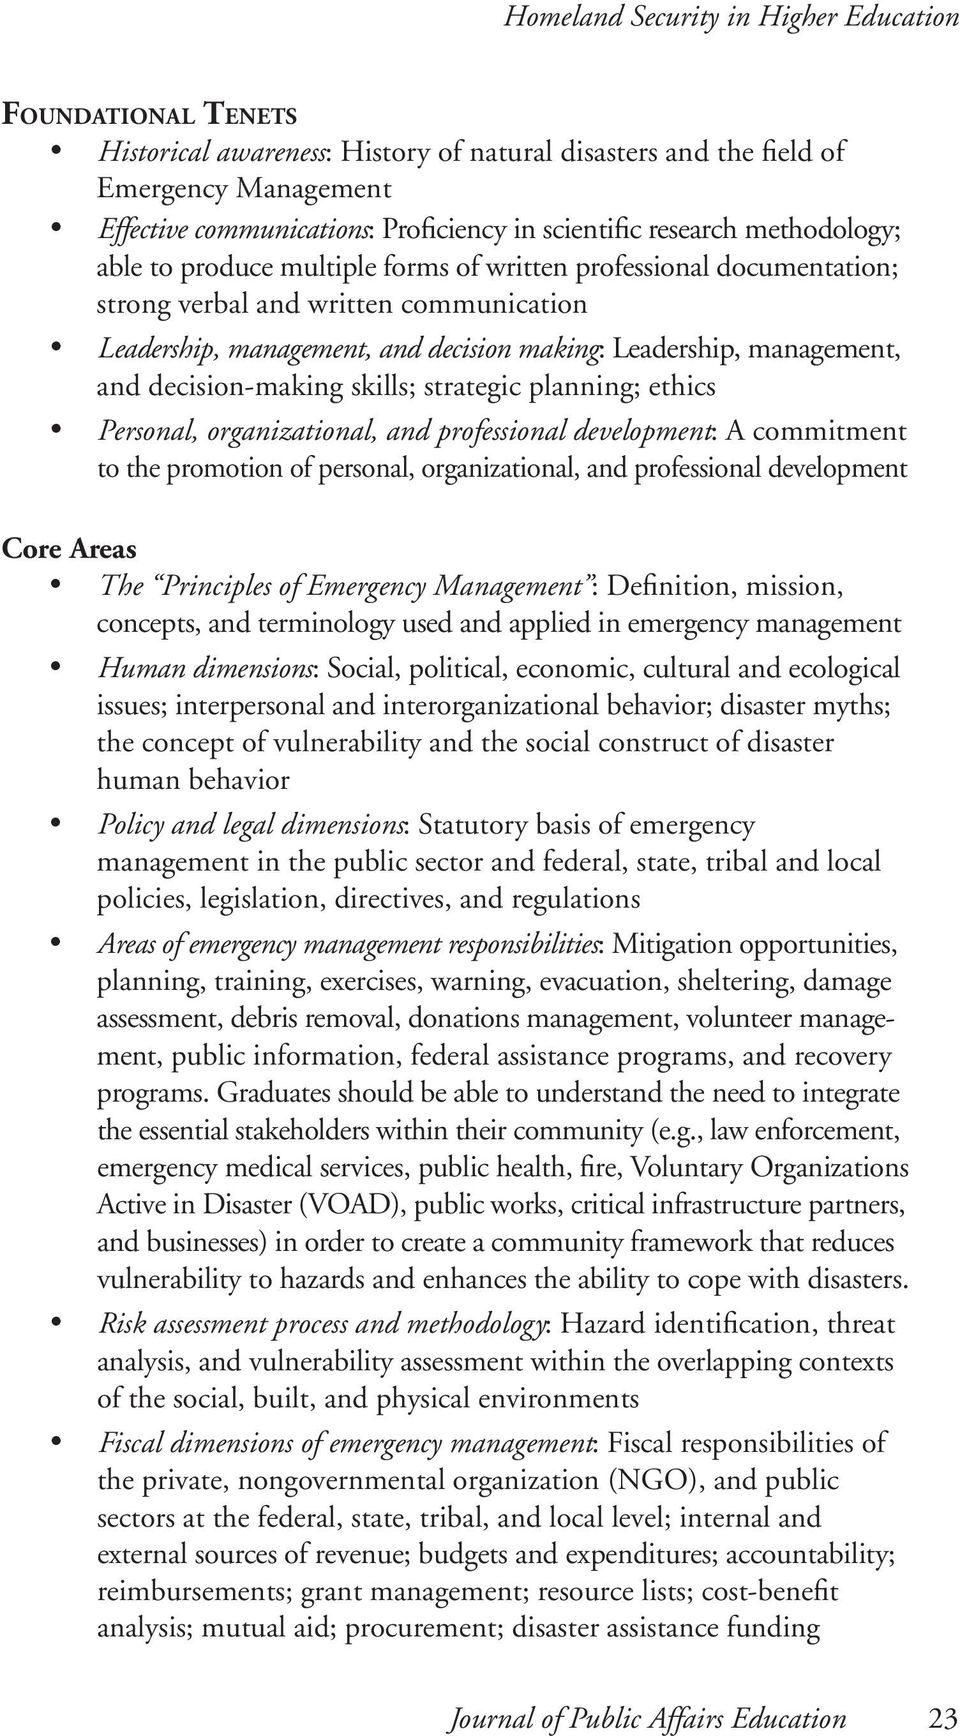 management, and decision-making skills; strategic planning; ethics Personal, organizational, and professional development: A commitment to the promotion of personal, organizational, and professional